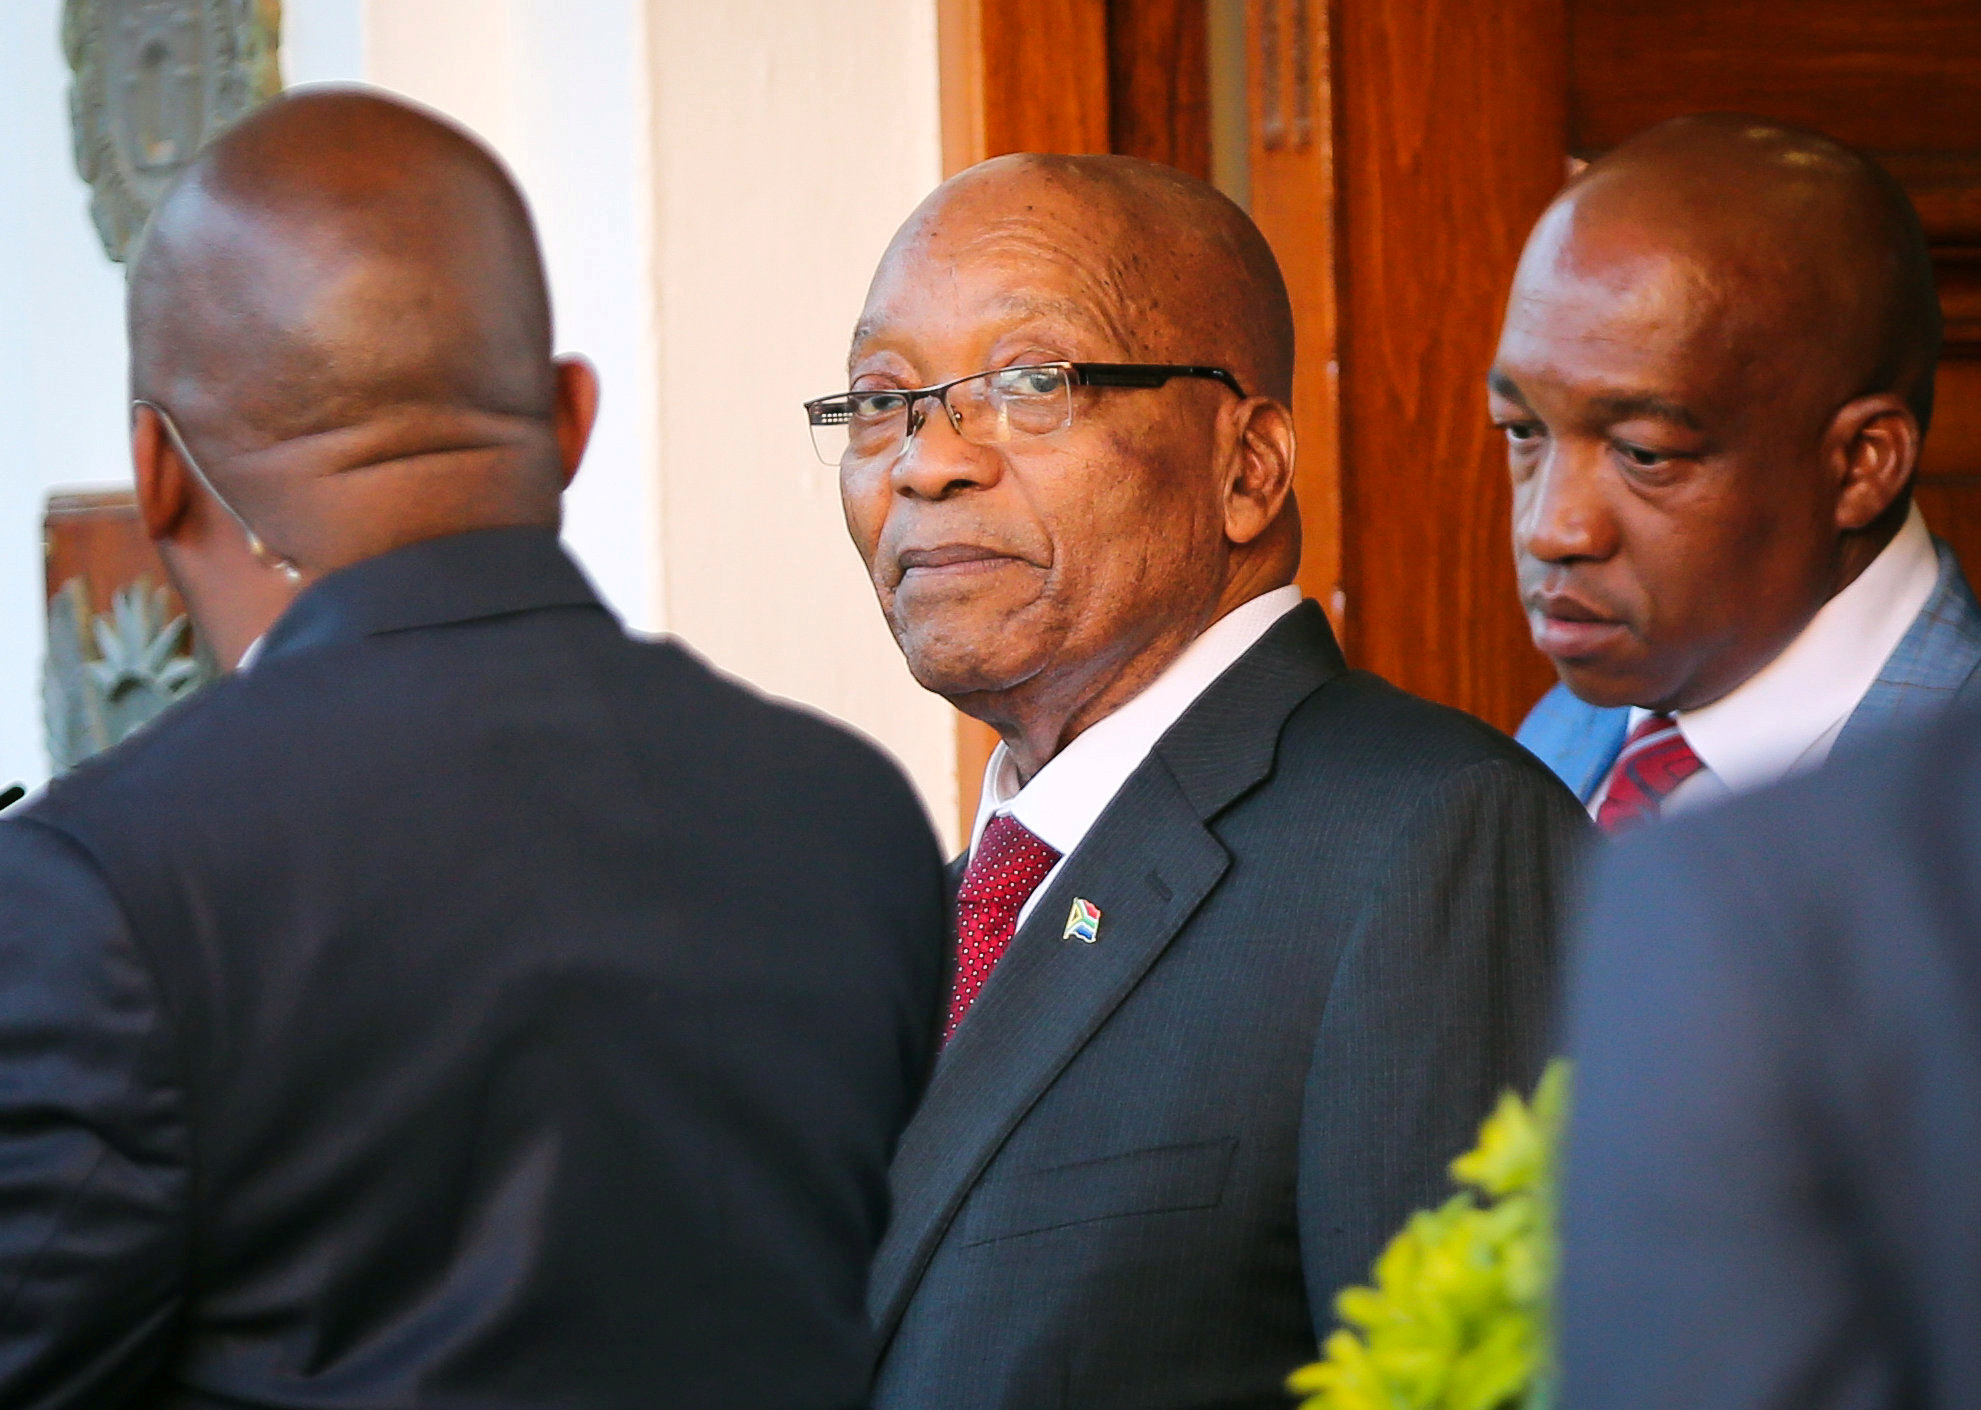 President Jacob Zuma leaves Tuynhuys, the office of the Presidency at Parliament in Cape Town, South Africa, Feb. 7, 2018.